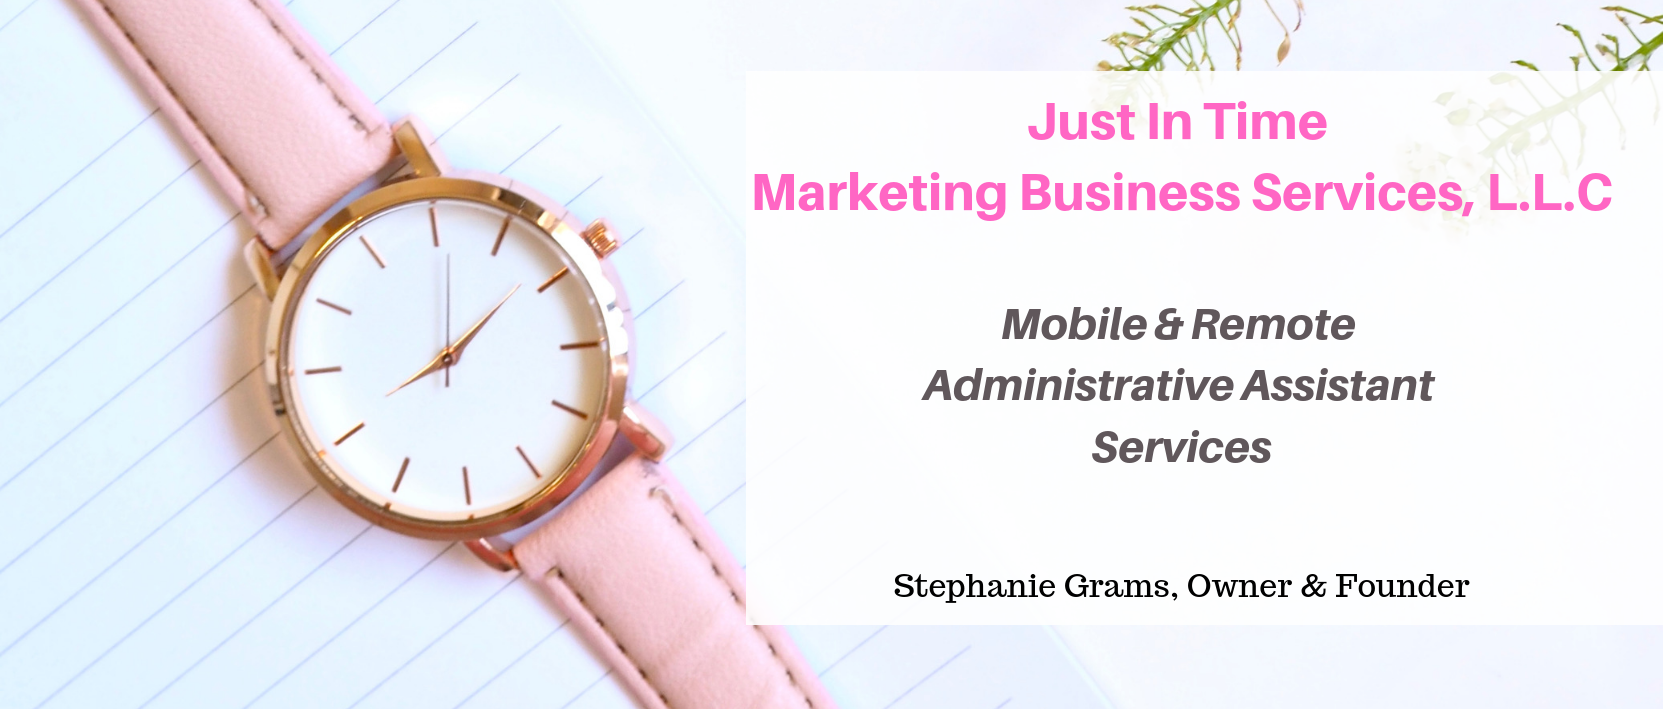 mobile and remote administrative marketing business services